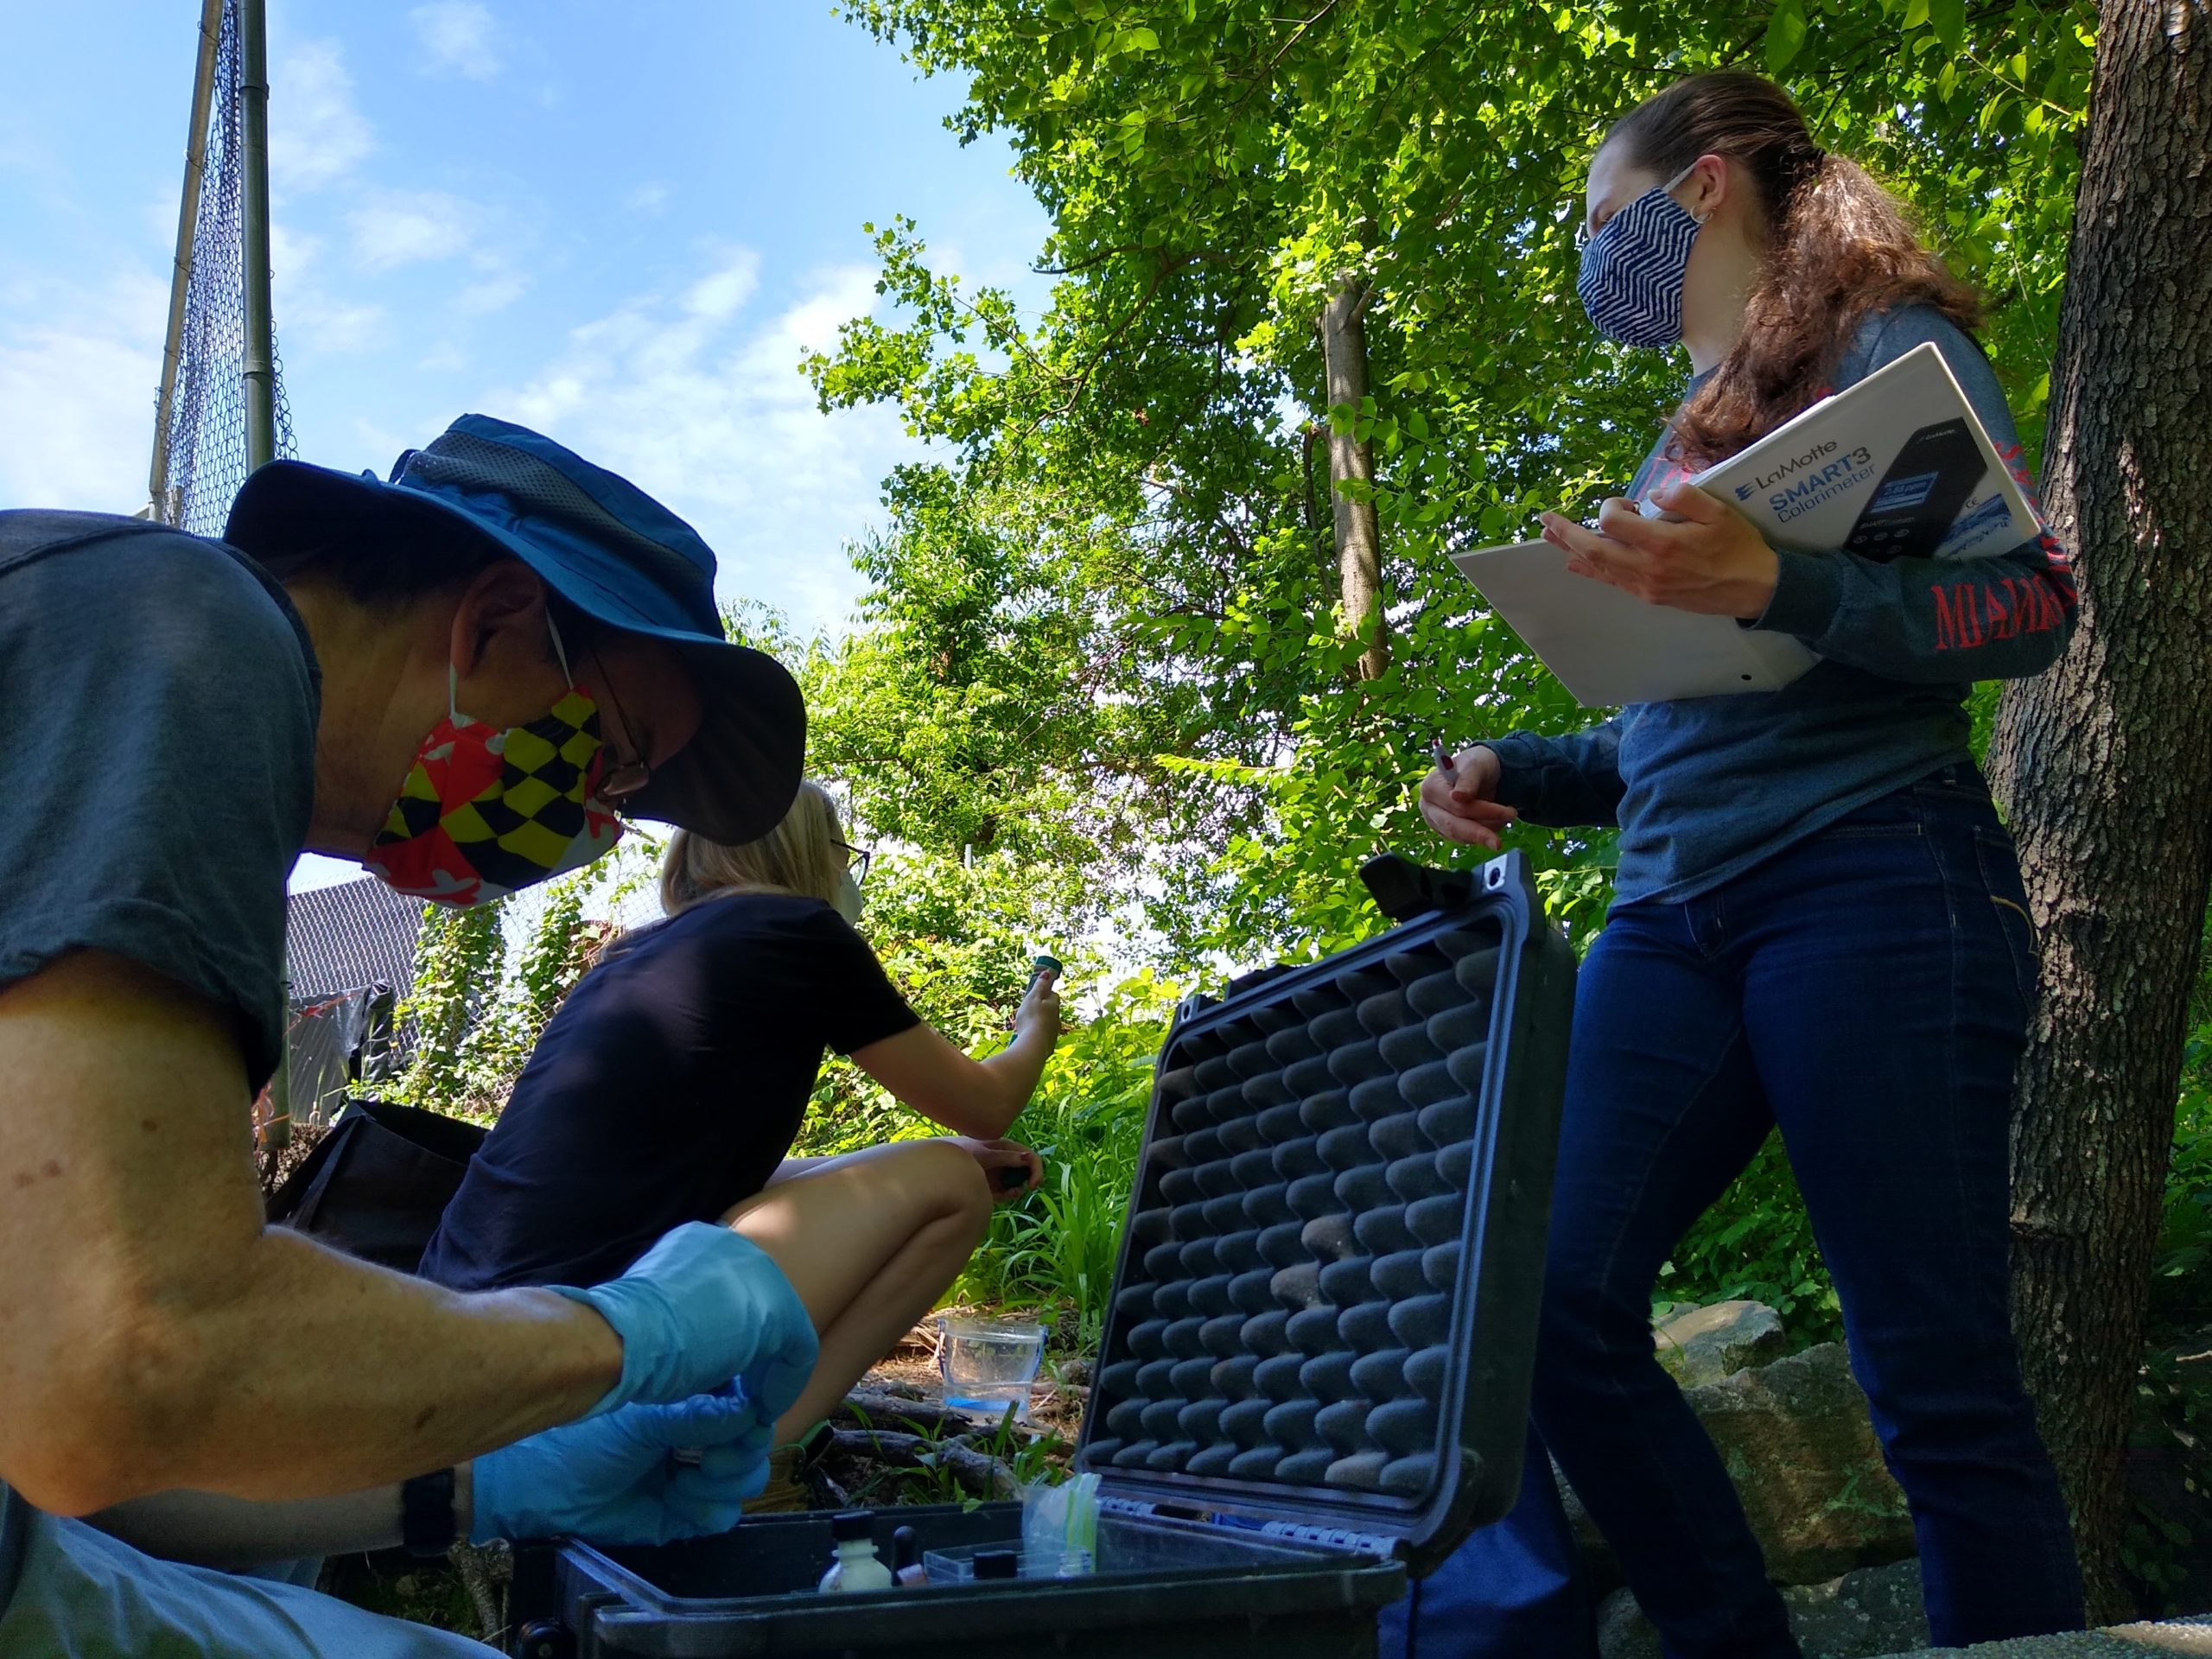 Monitoring water quality with the new colorimeter